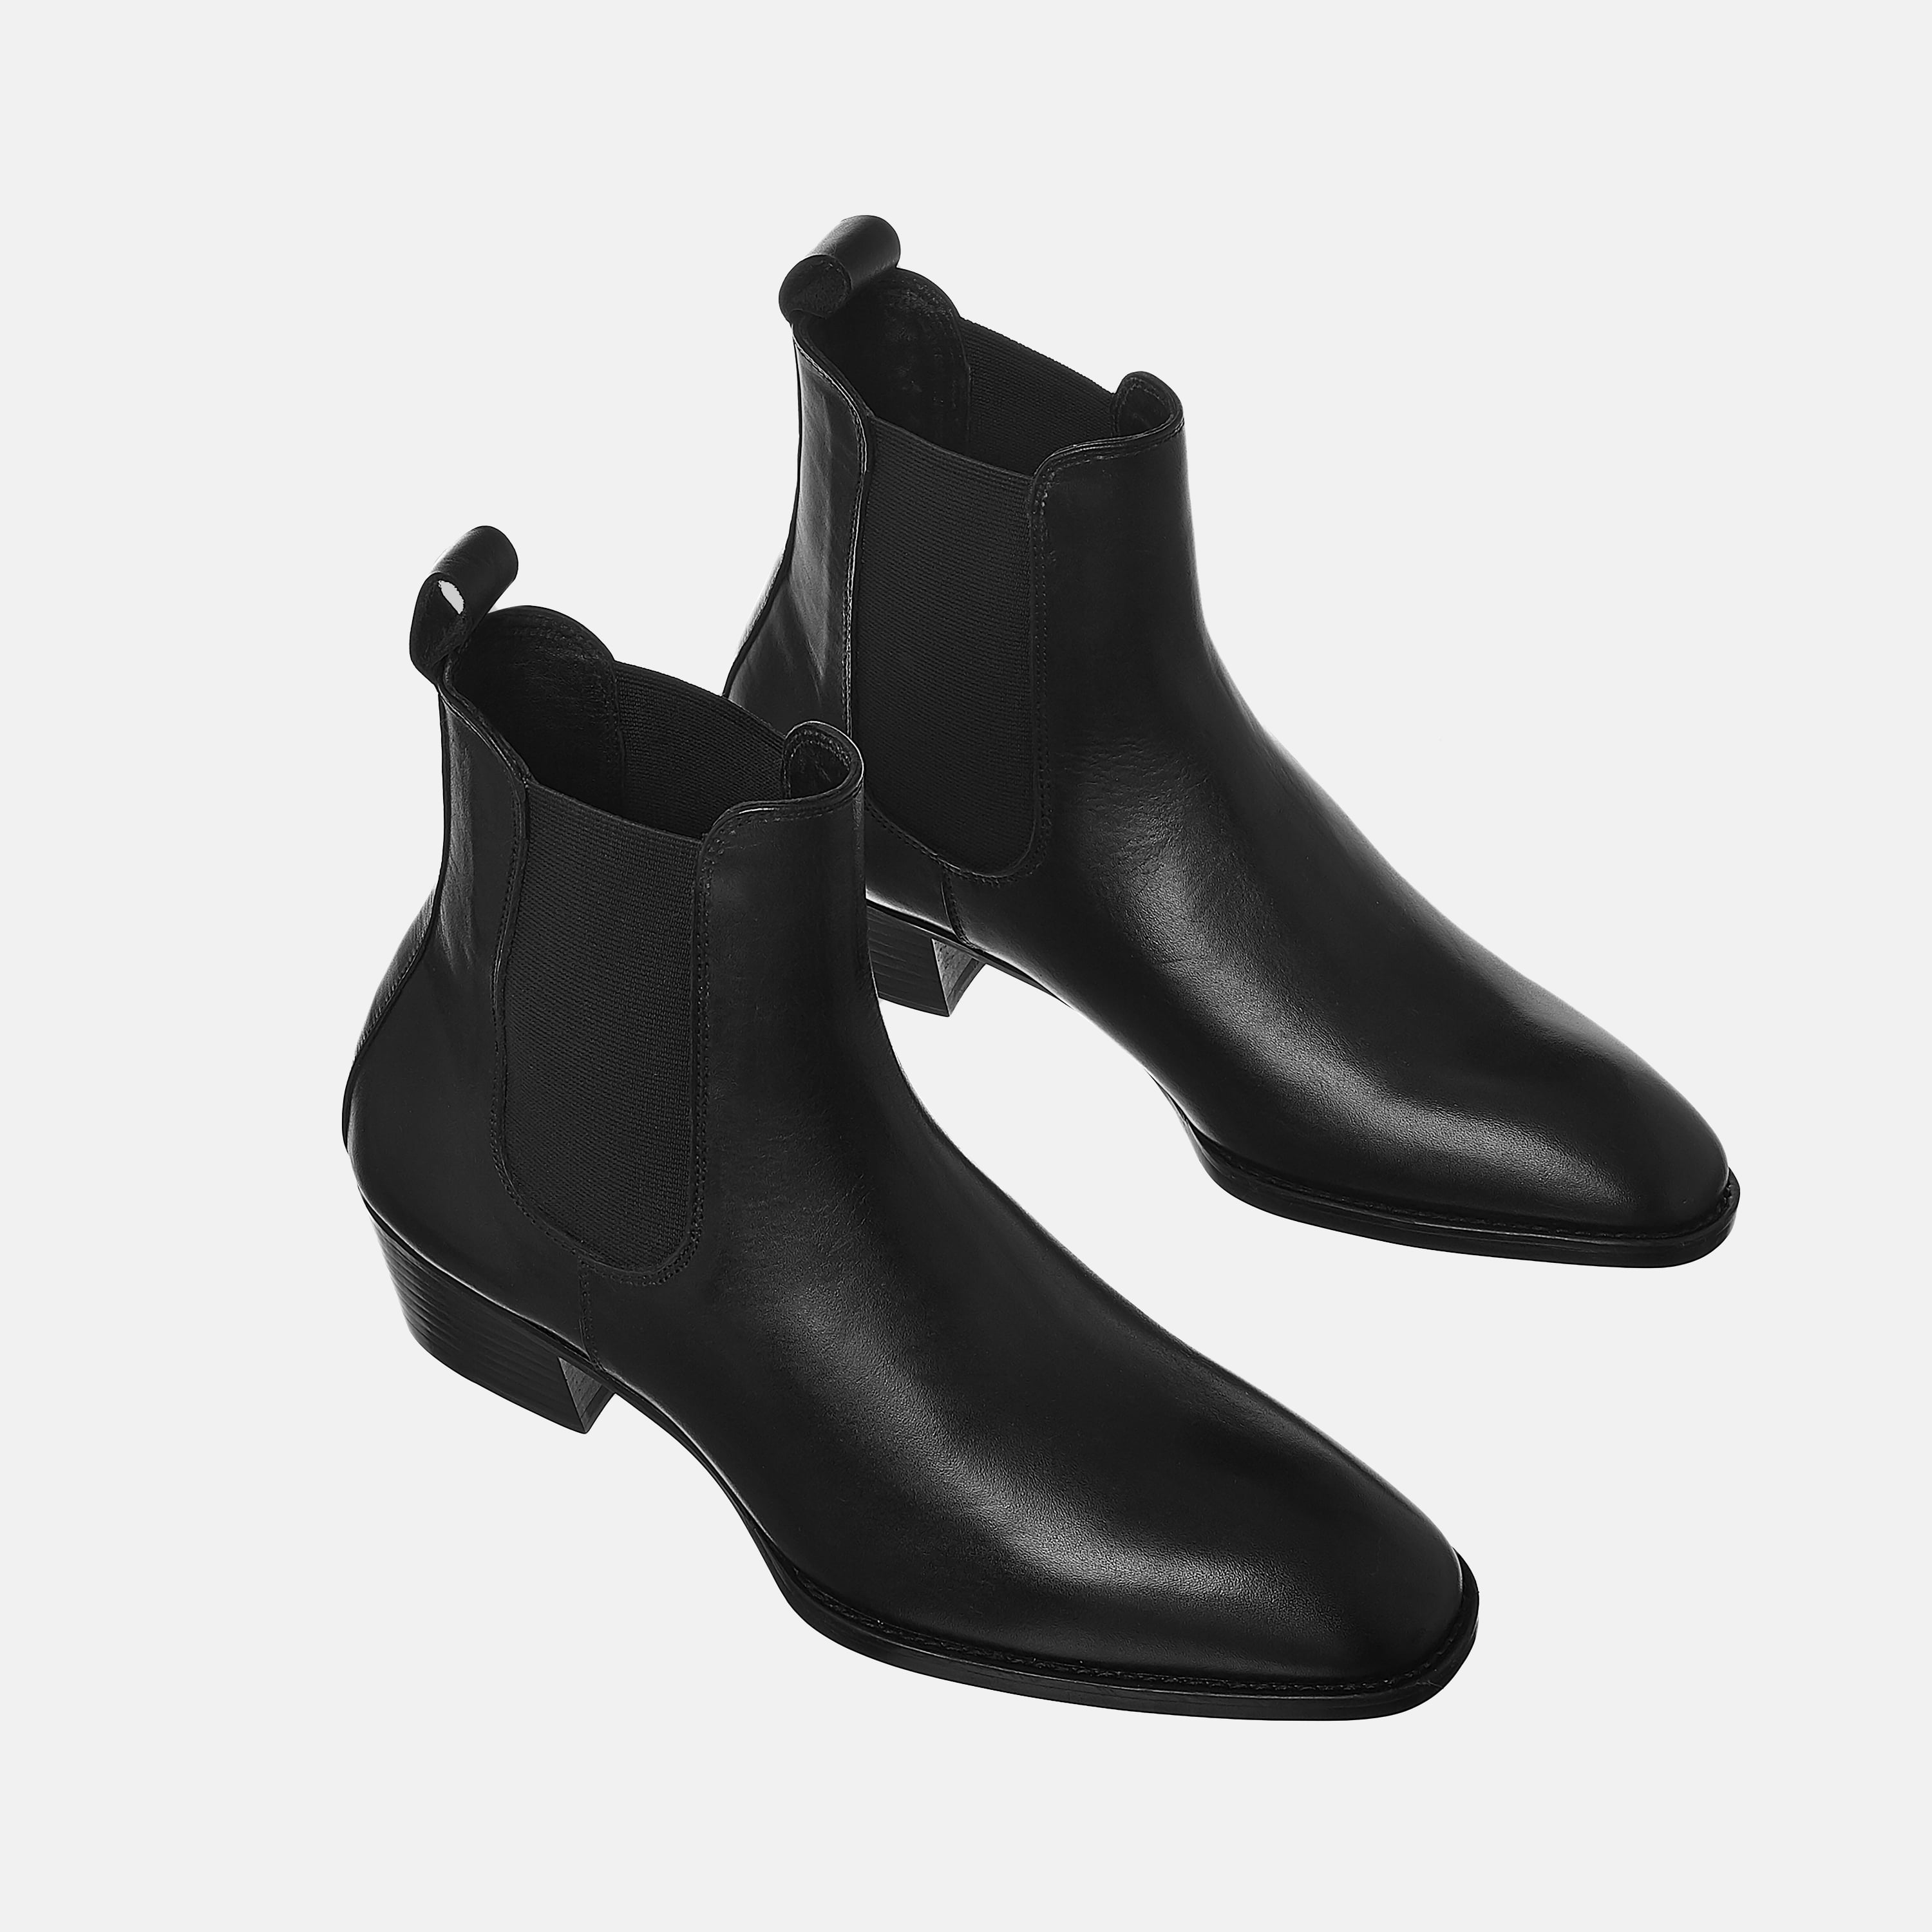 Leather Chelsea Boots In Black Leather Chelsea Boots In Black SS2020 Product thumbnail 1